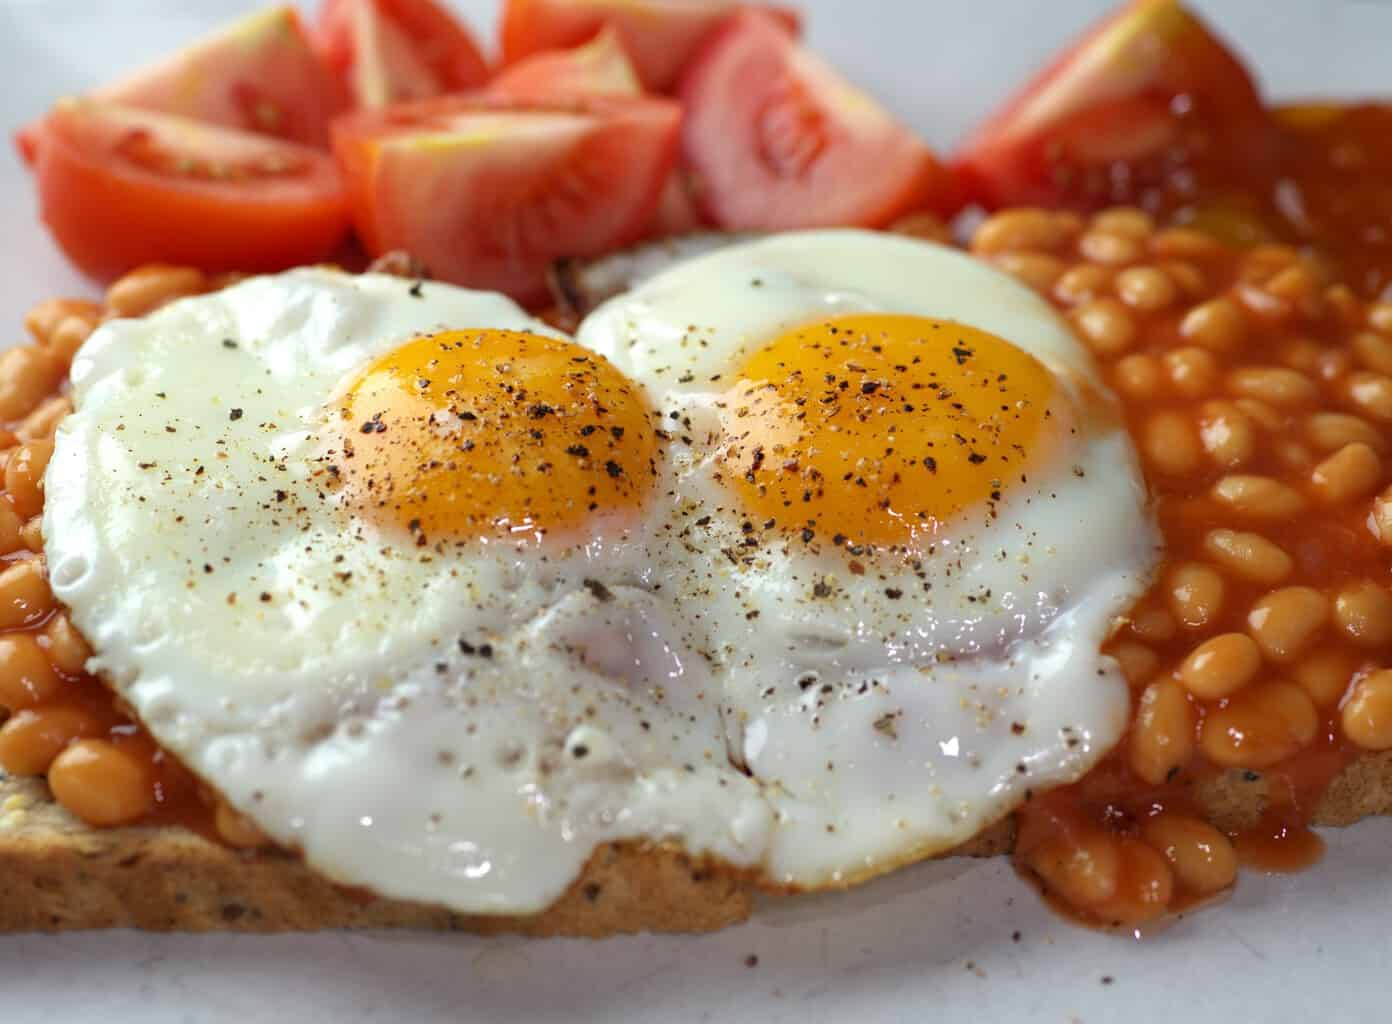 Beans and fried eggs on toast